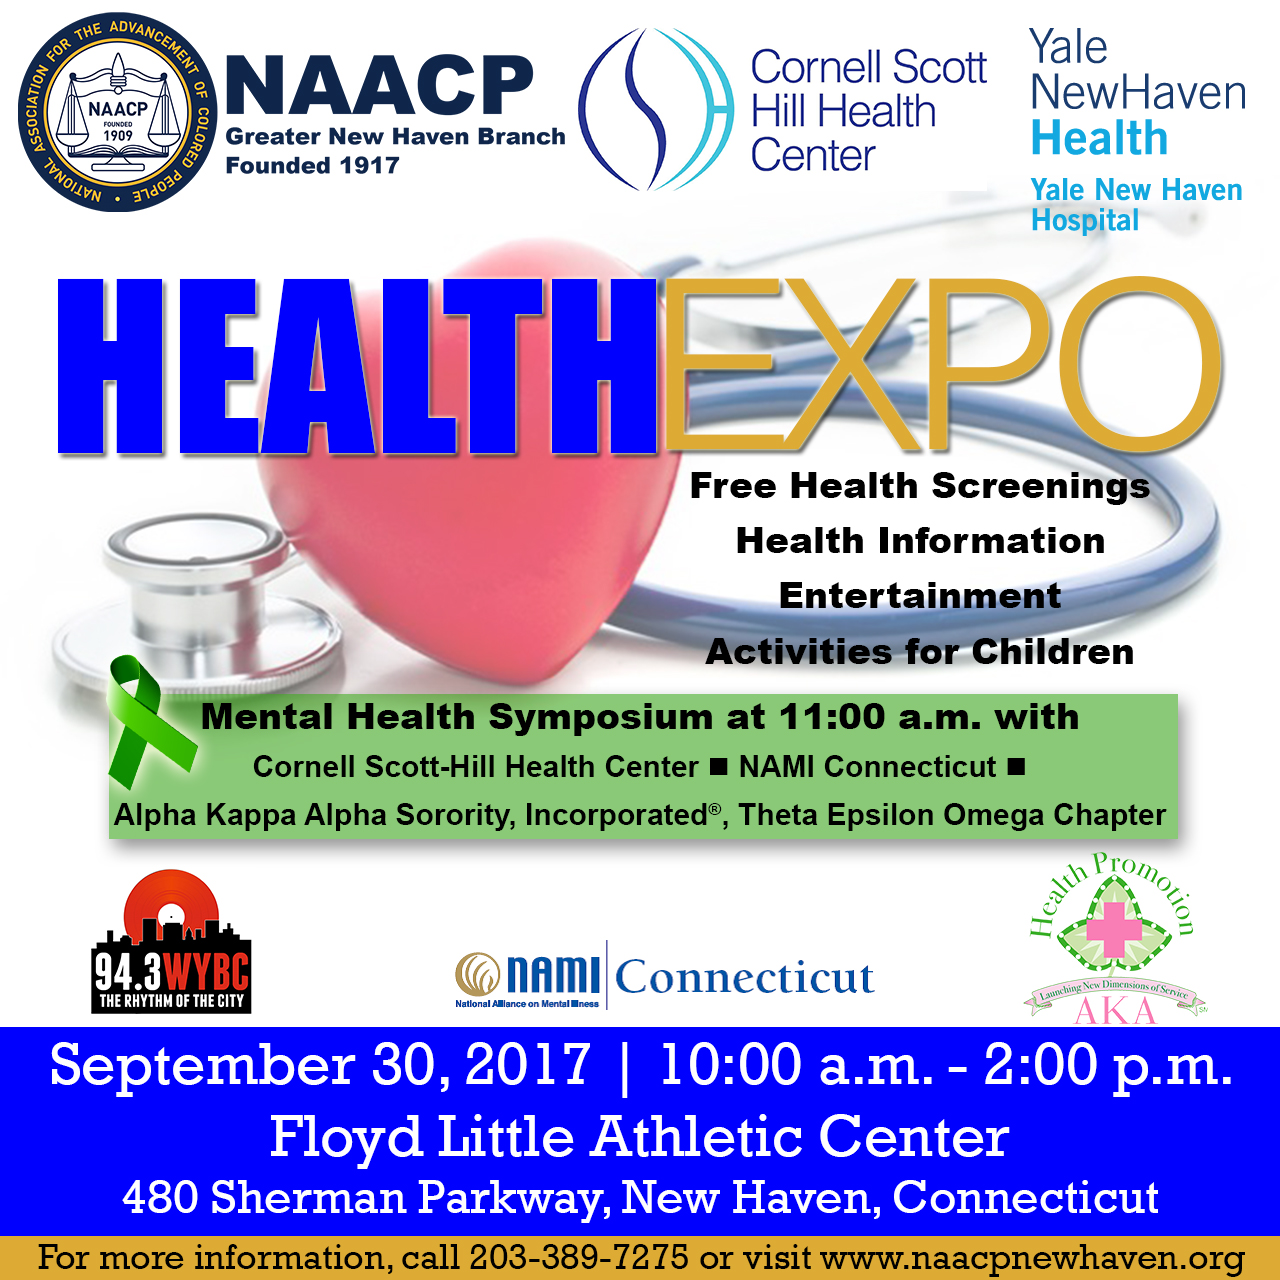 NAACP Health Expo Flyer